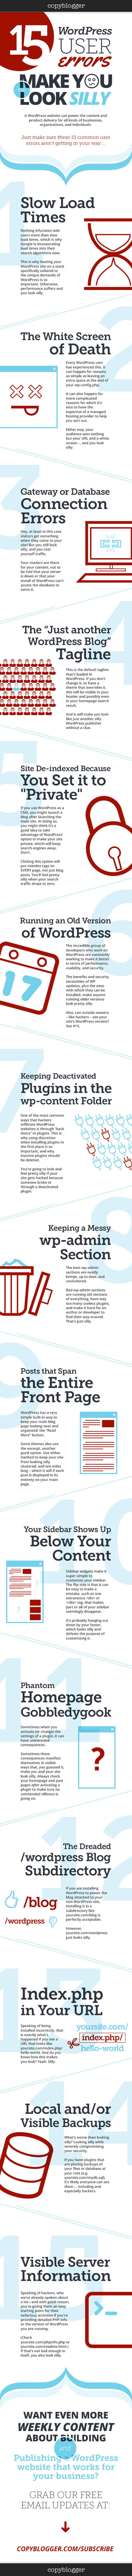 15 WordPress User Errors That Make You Look Silly [Infographic] | Tech Tips | Scoop.it